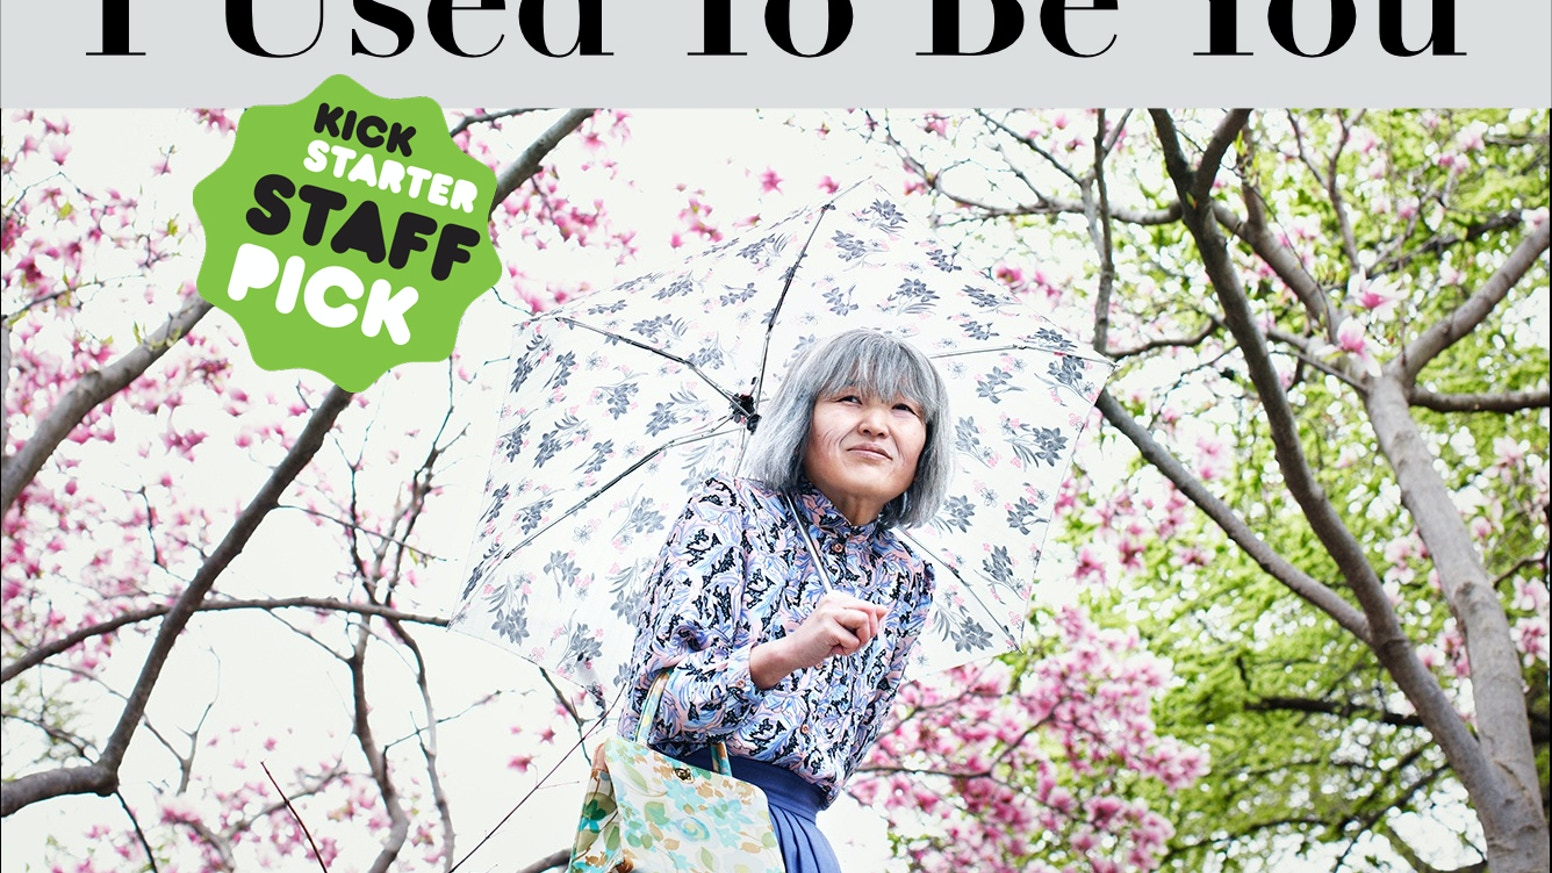 Hamada has been photographing herself as her elderly alterego since 2012 confronting ageing, mortality and one's own legacy.